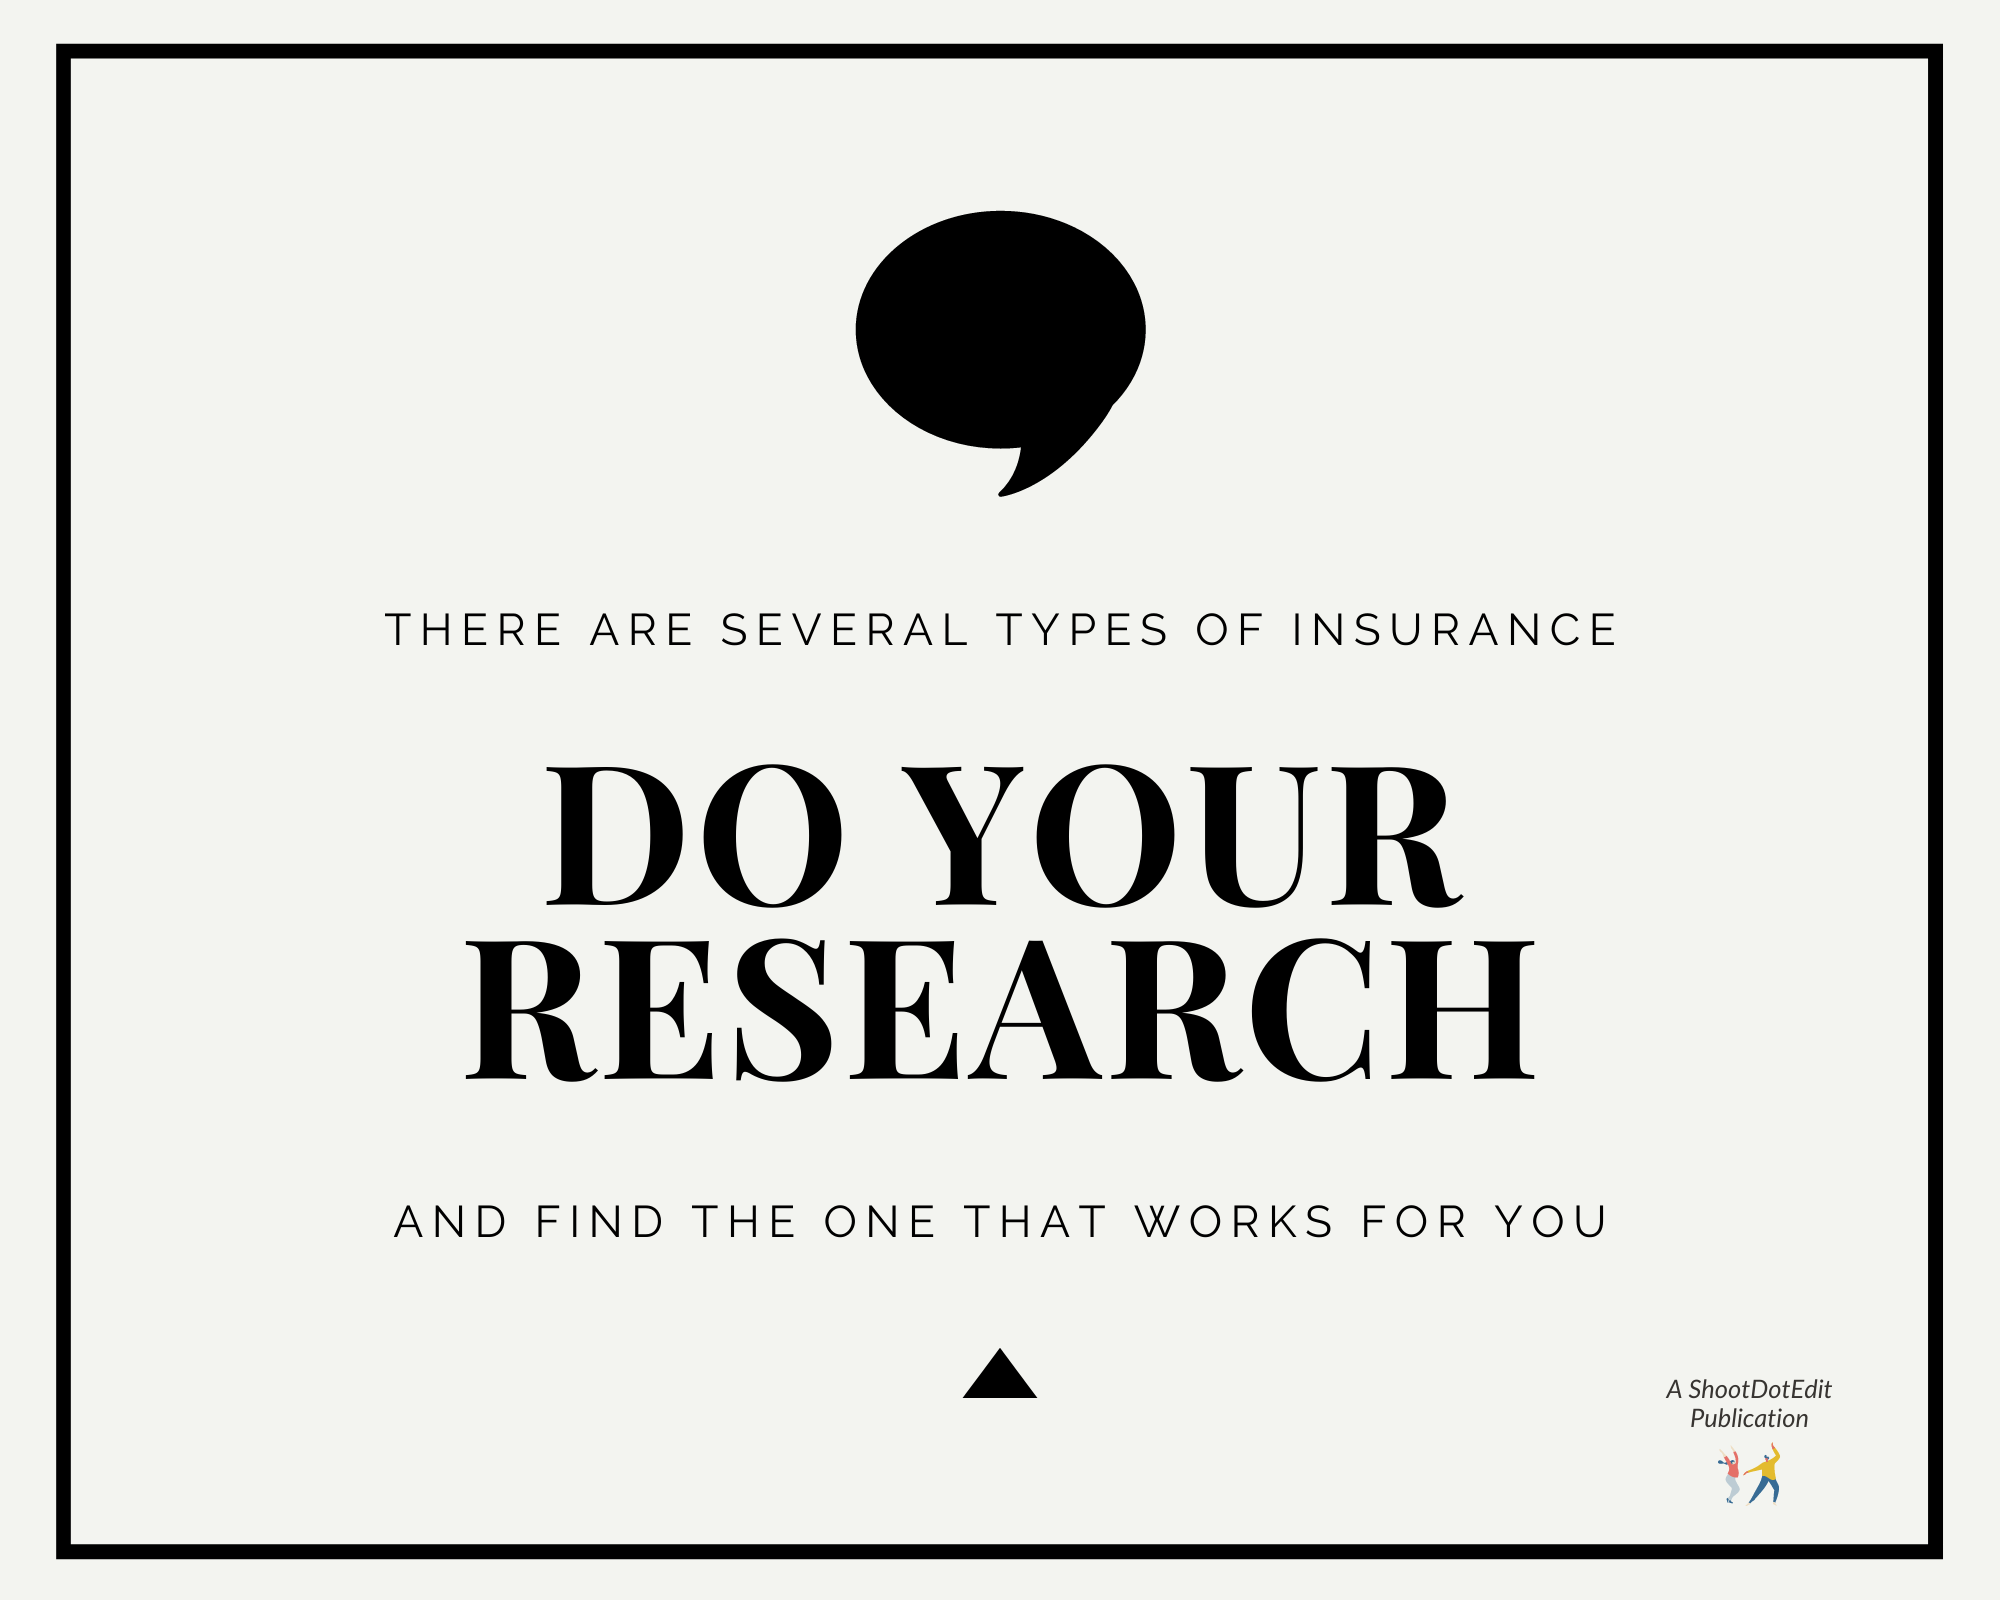 Graphic displaying - There are several types of insurance. Do your research & find the one that works for you